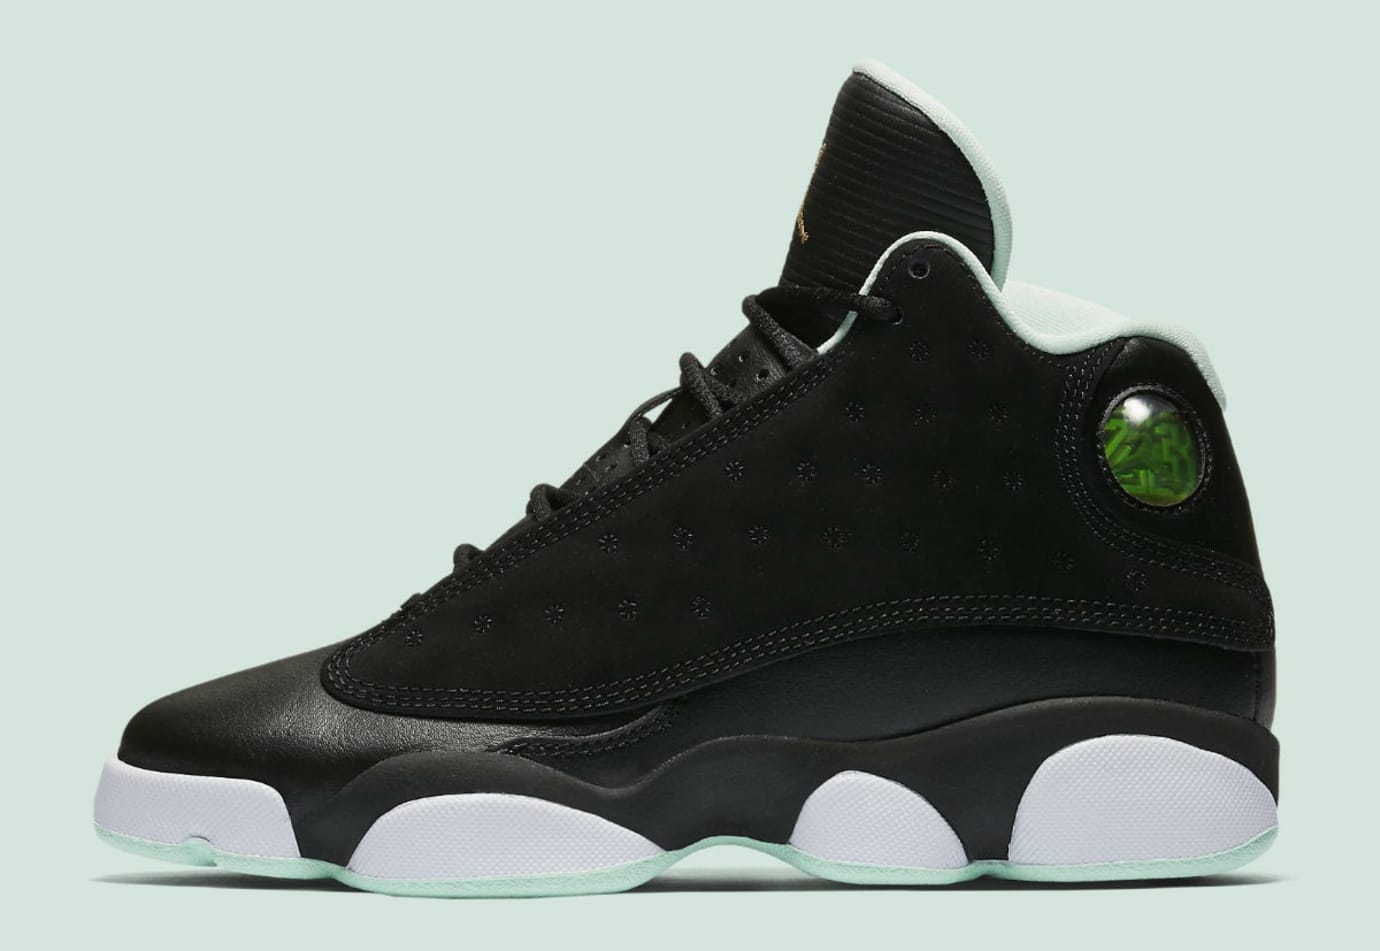 2962fa93946 Air Jordan 13 GS Mint Foam Release Date 439358-015 | Sole Collector